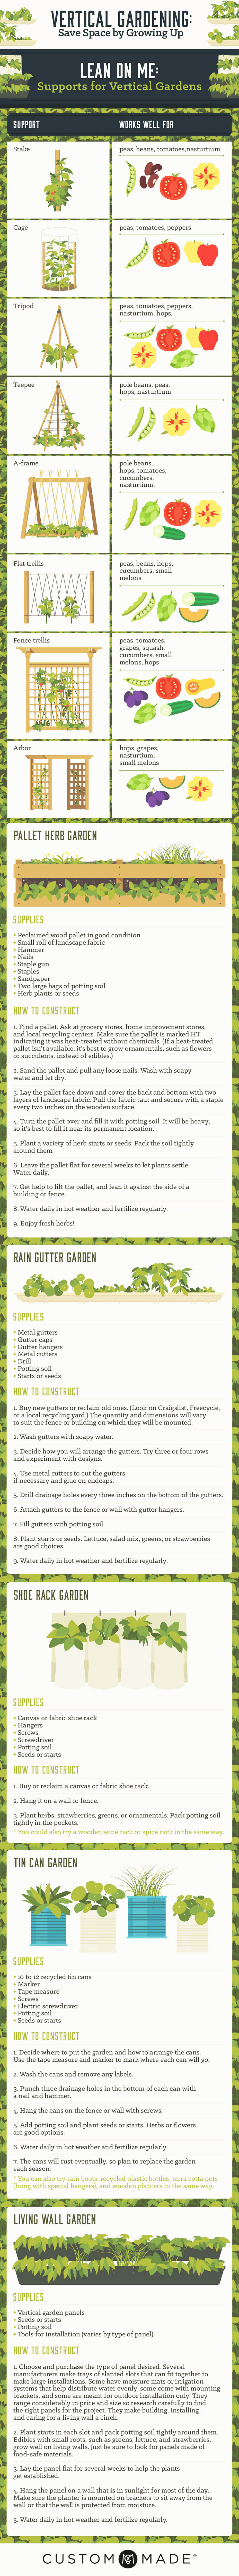 Vertical Gardening Save Space by Growing Up - Garden Infographic